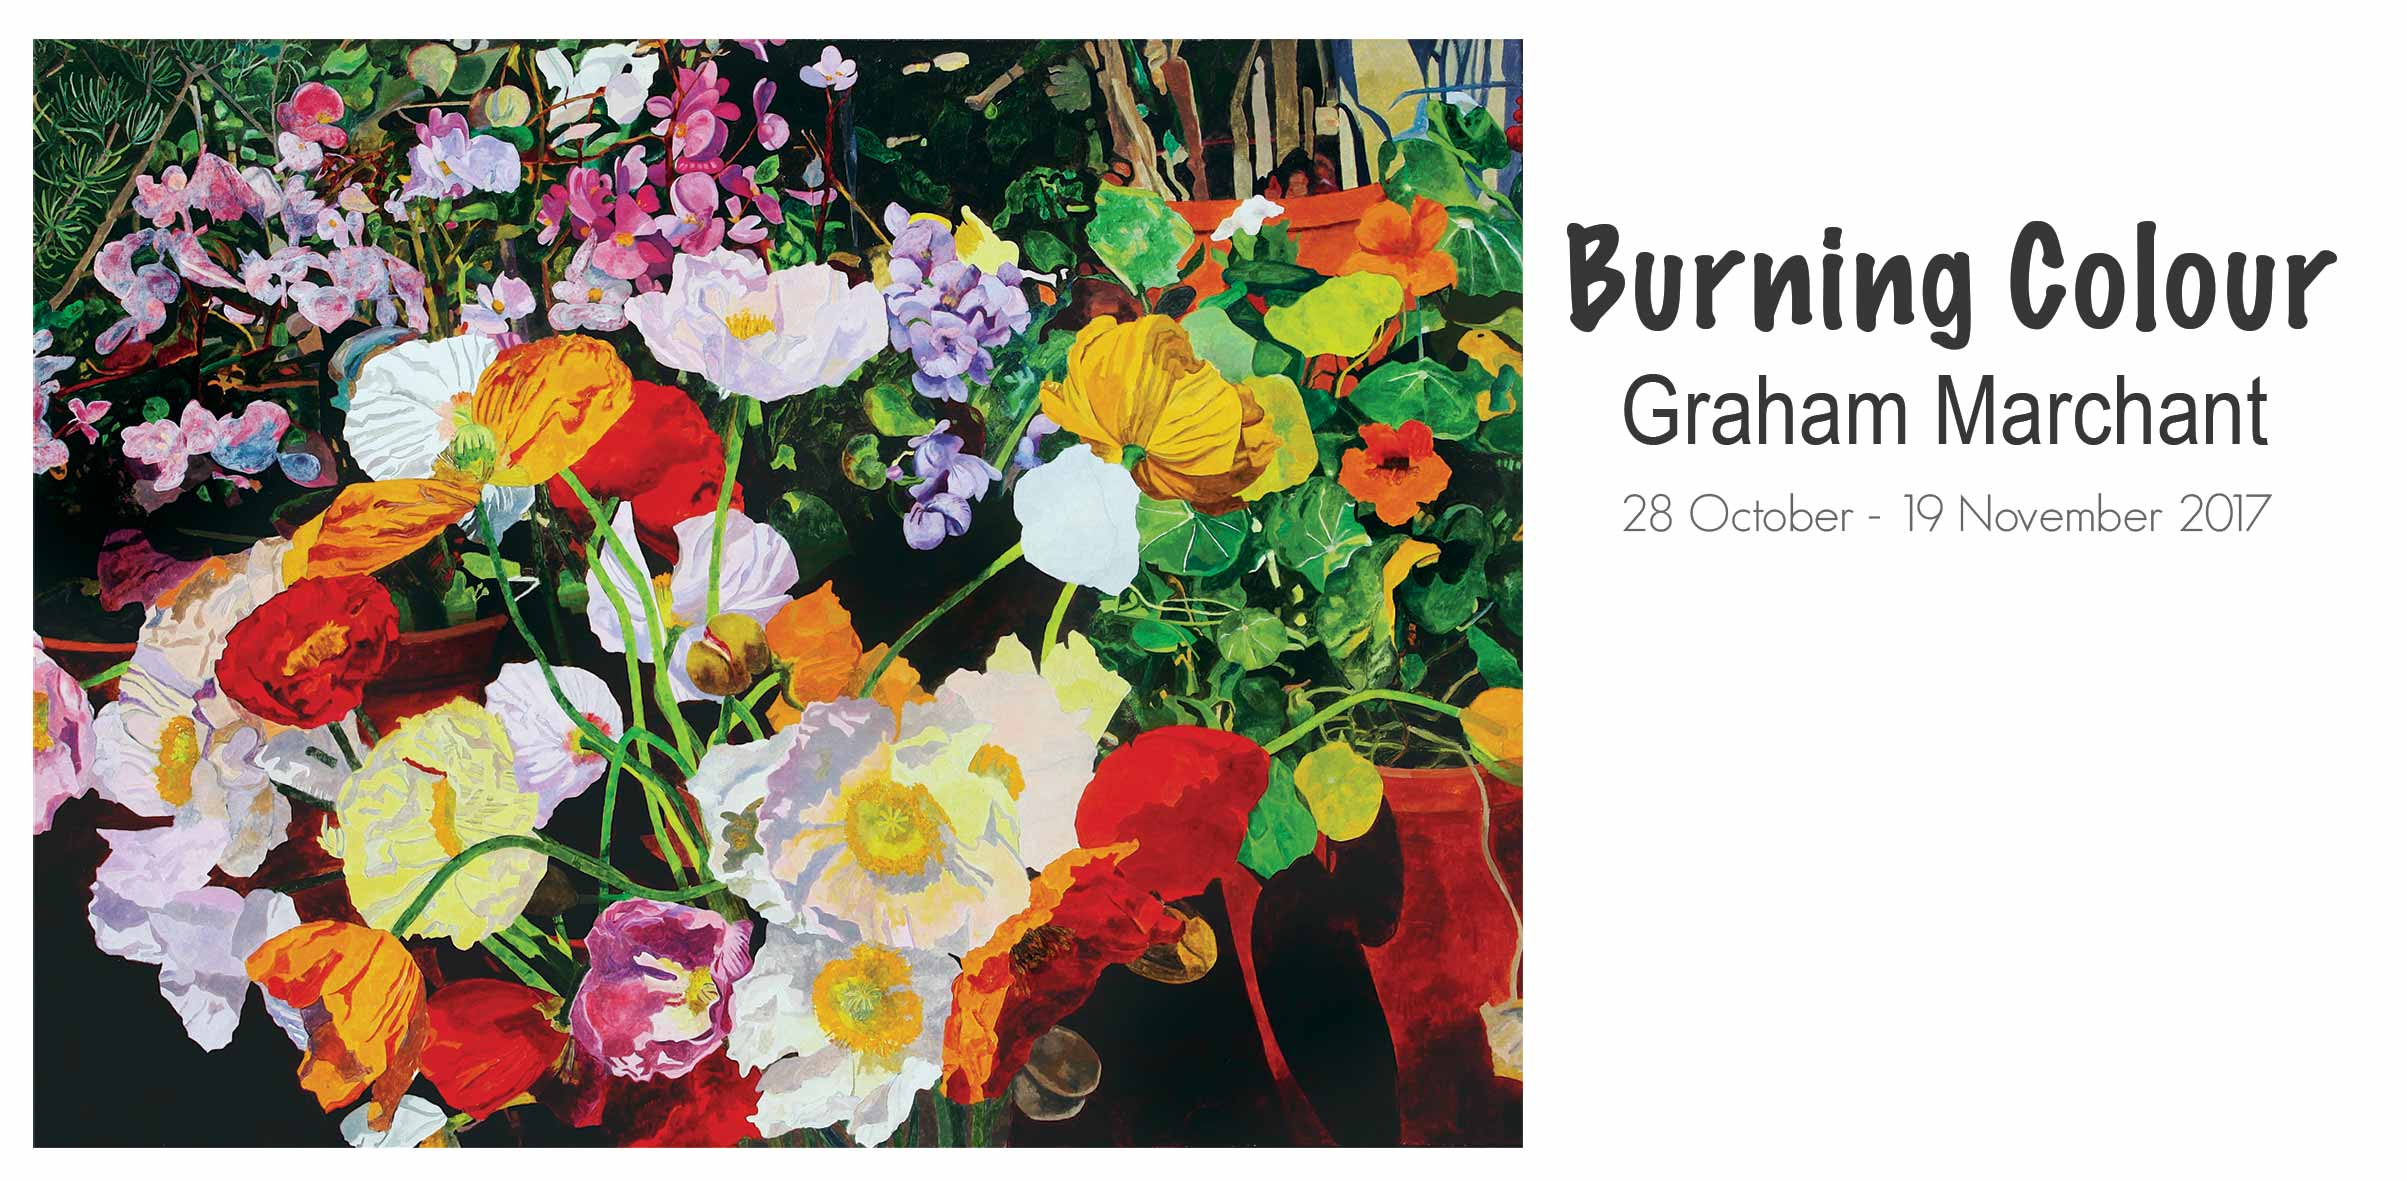 New Exhibition at Artsite Galleries, Sydney. Burning Colour: Graham Marchant, 28 October - 19th November 2017.